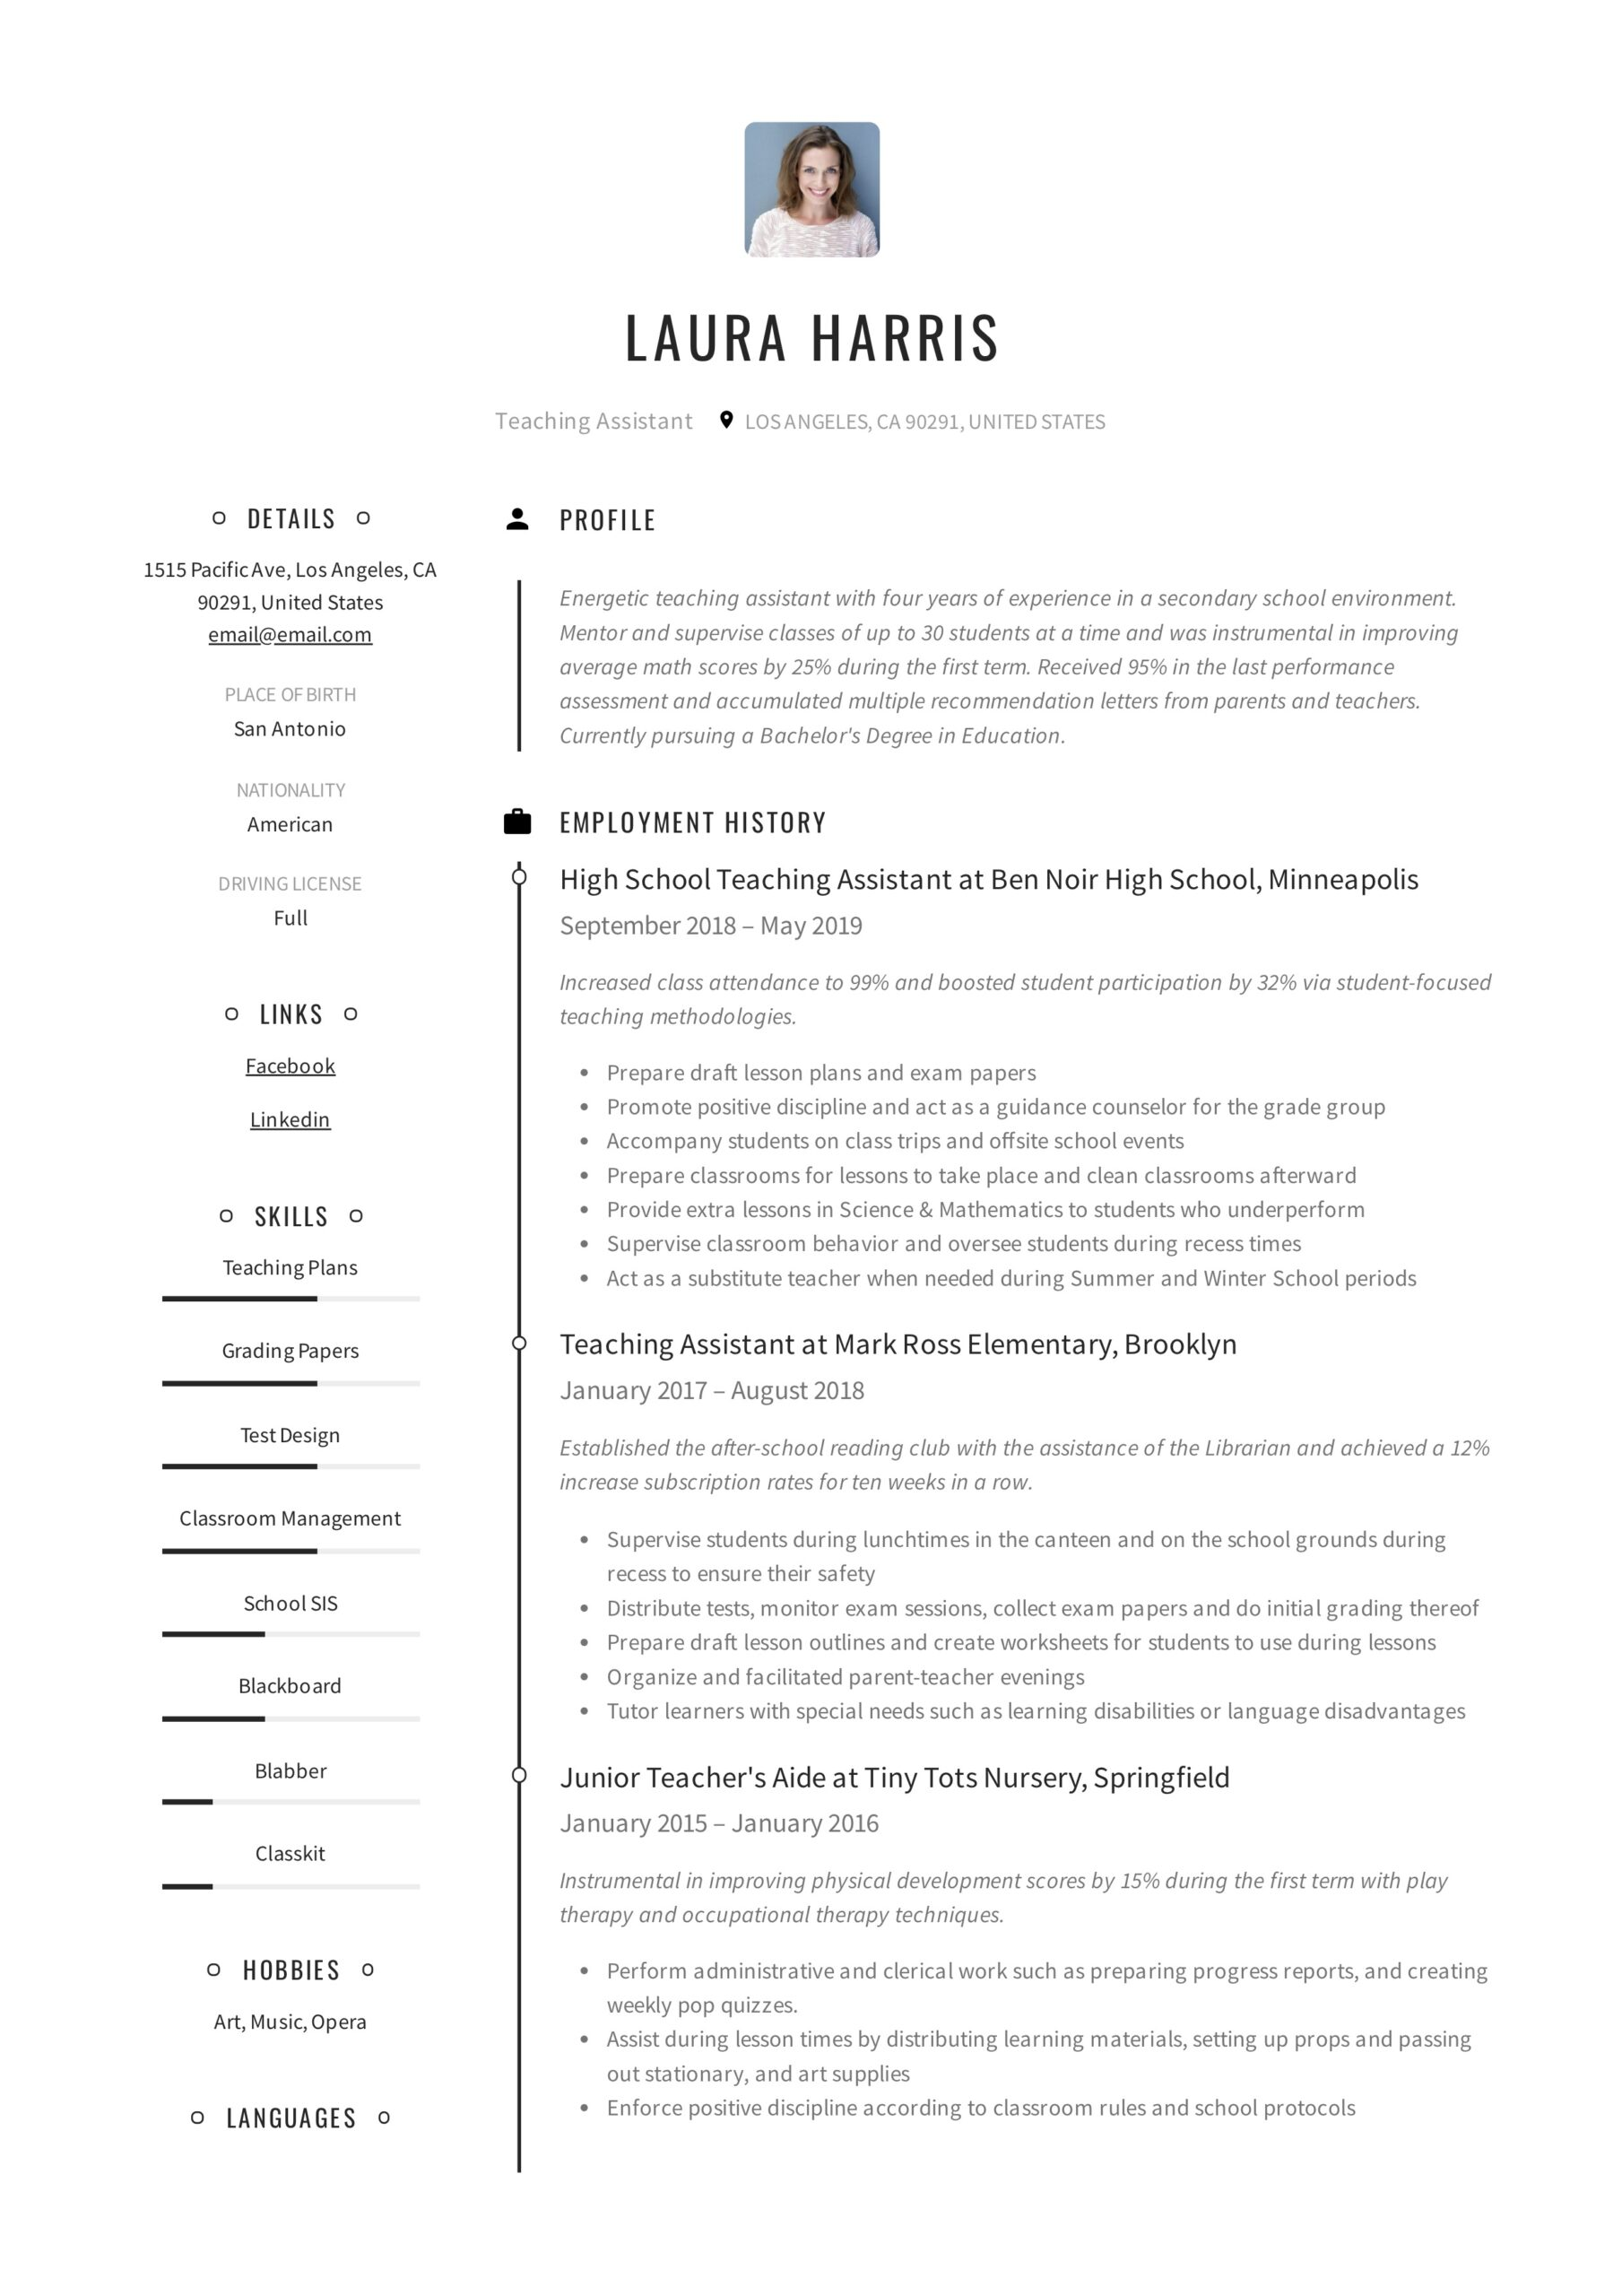 teaching assistant resume writing guide templates pdf paraprofessional template firmware Resume Paraprofessional Resume